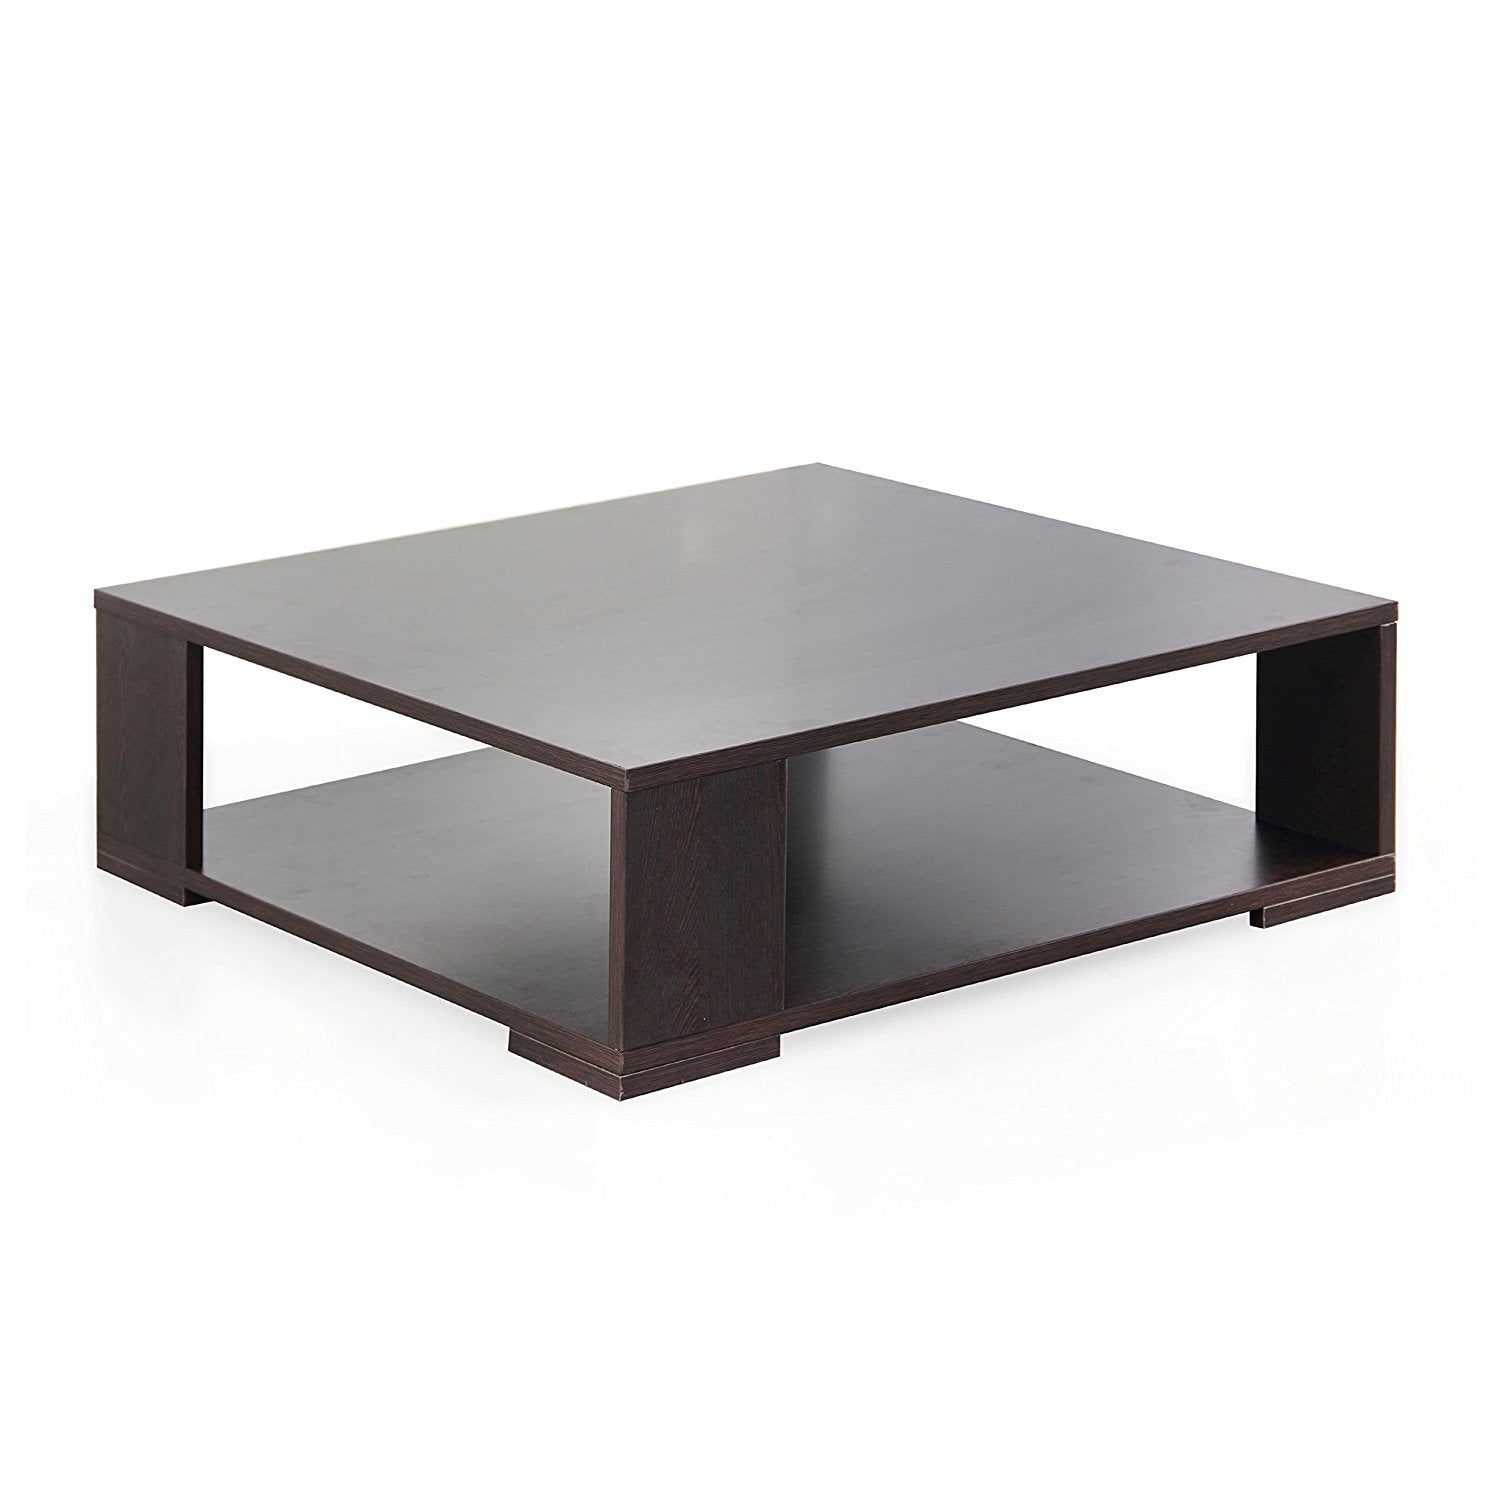 Insignia Clinton Square Coffee Table (Matt Finish, Wenge)